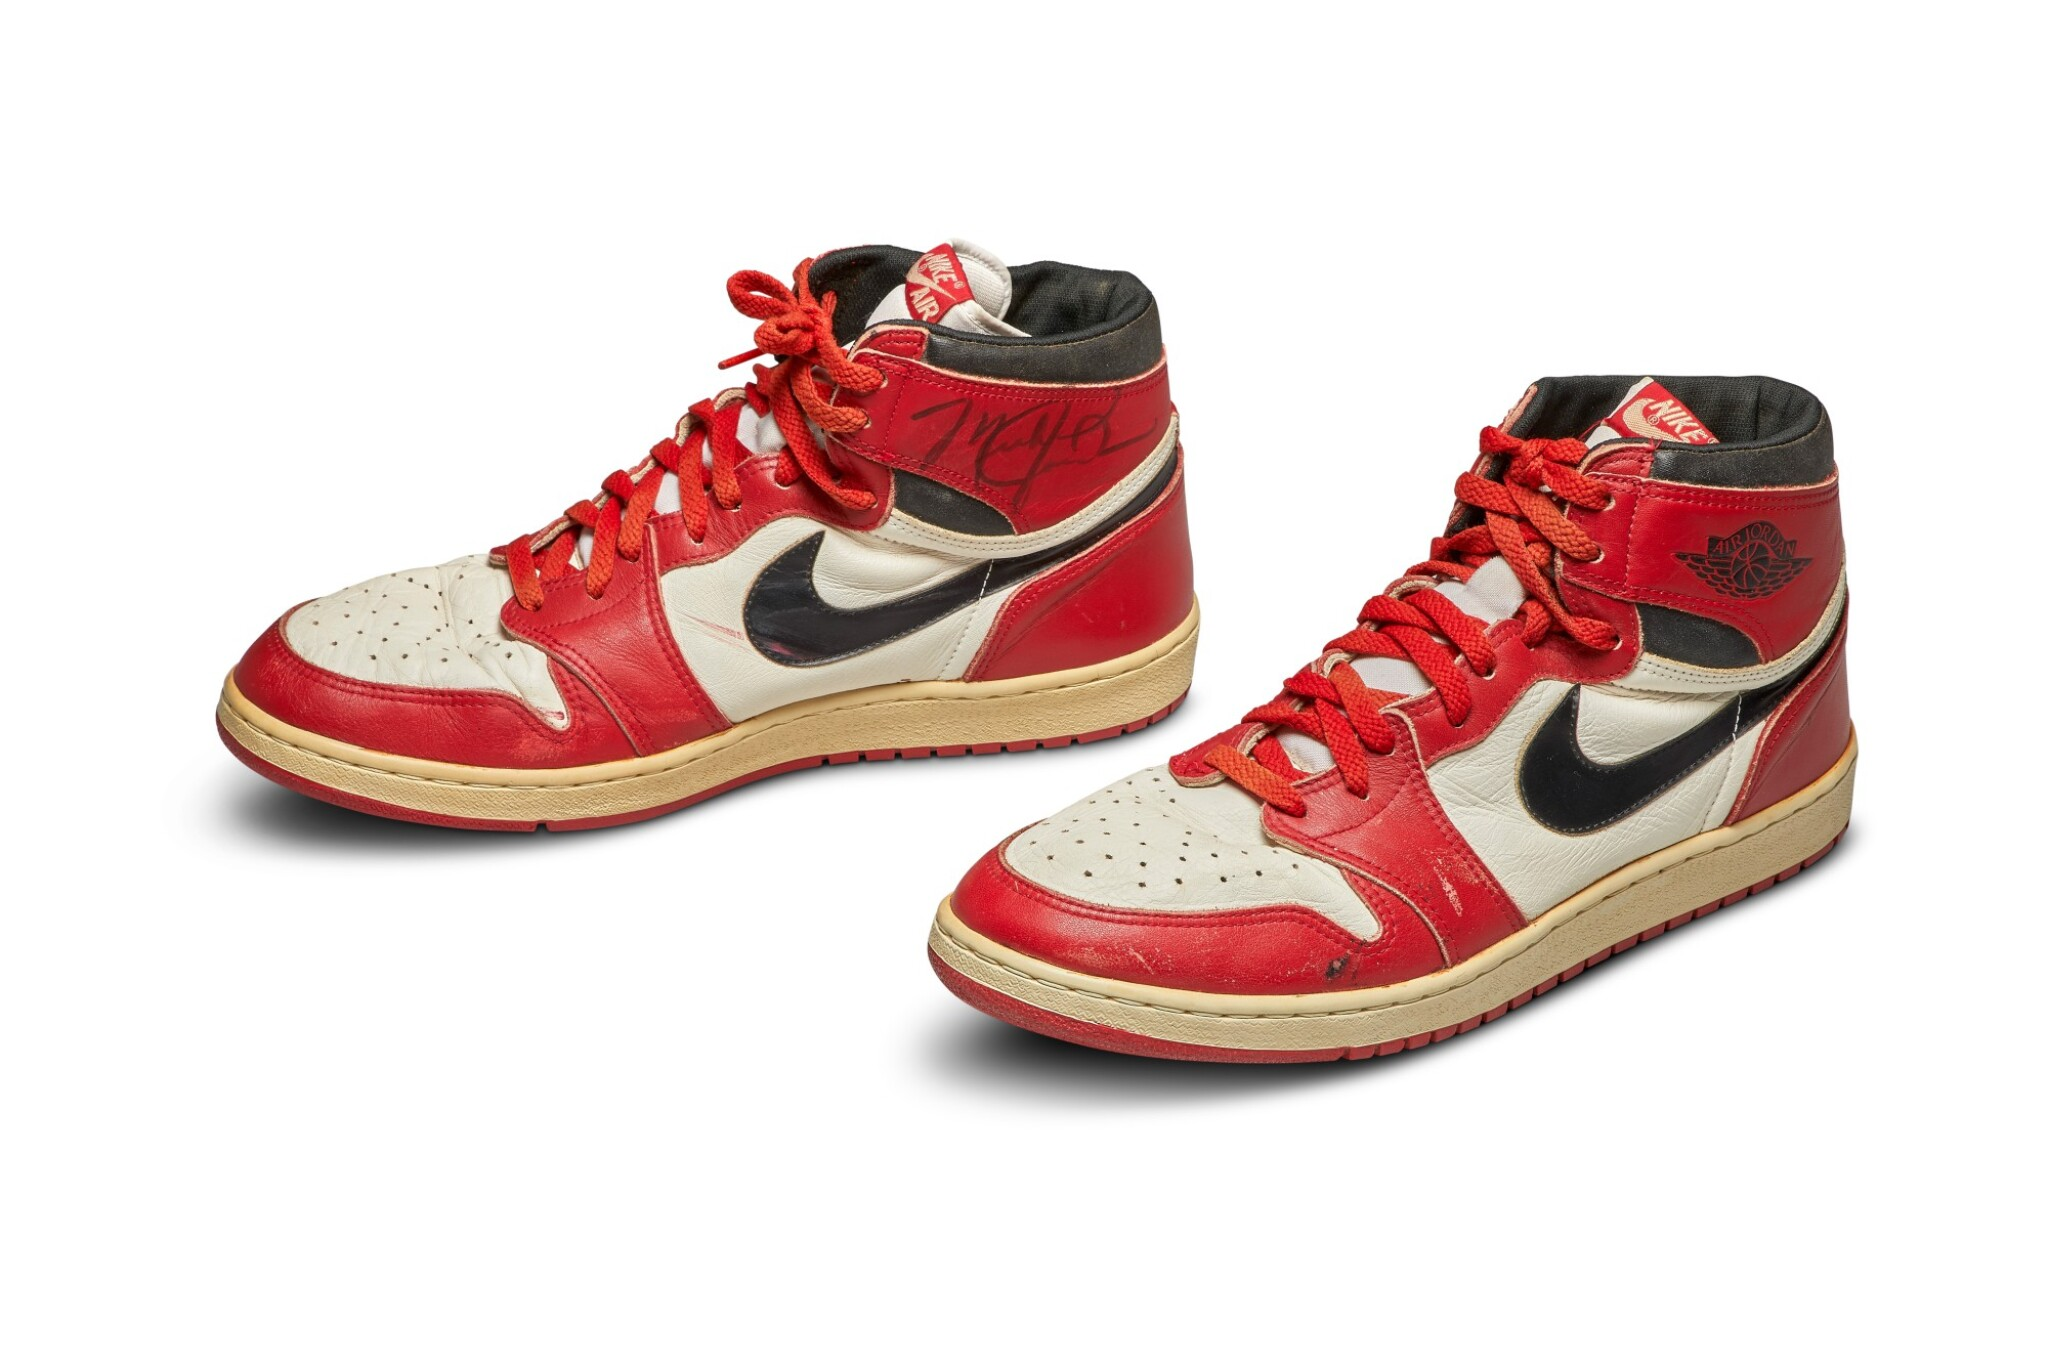 View 1 of Lot 1. Michael Jordan's Game Worn 1985 Player Sample Air Jordan 1s | Sizes 13, 13.5.